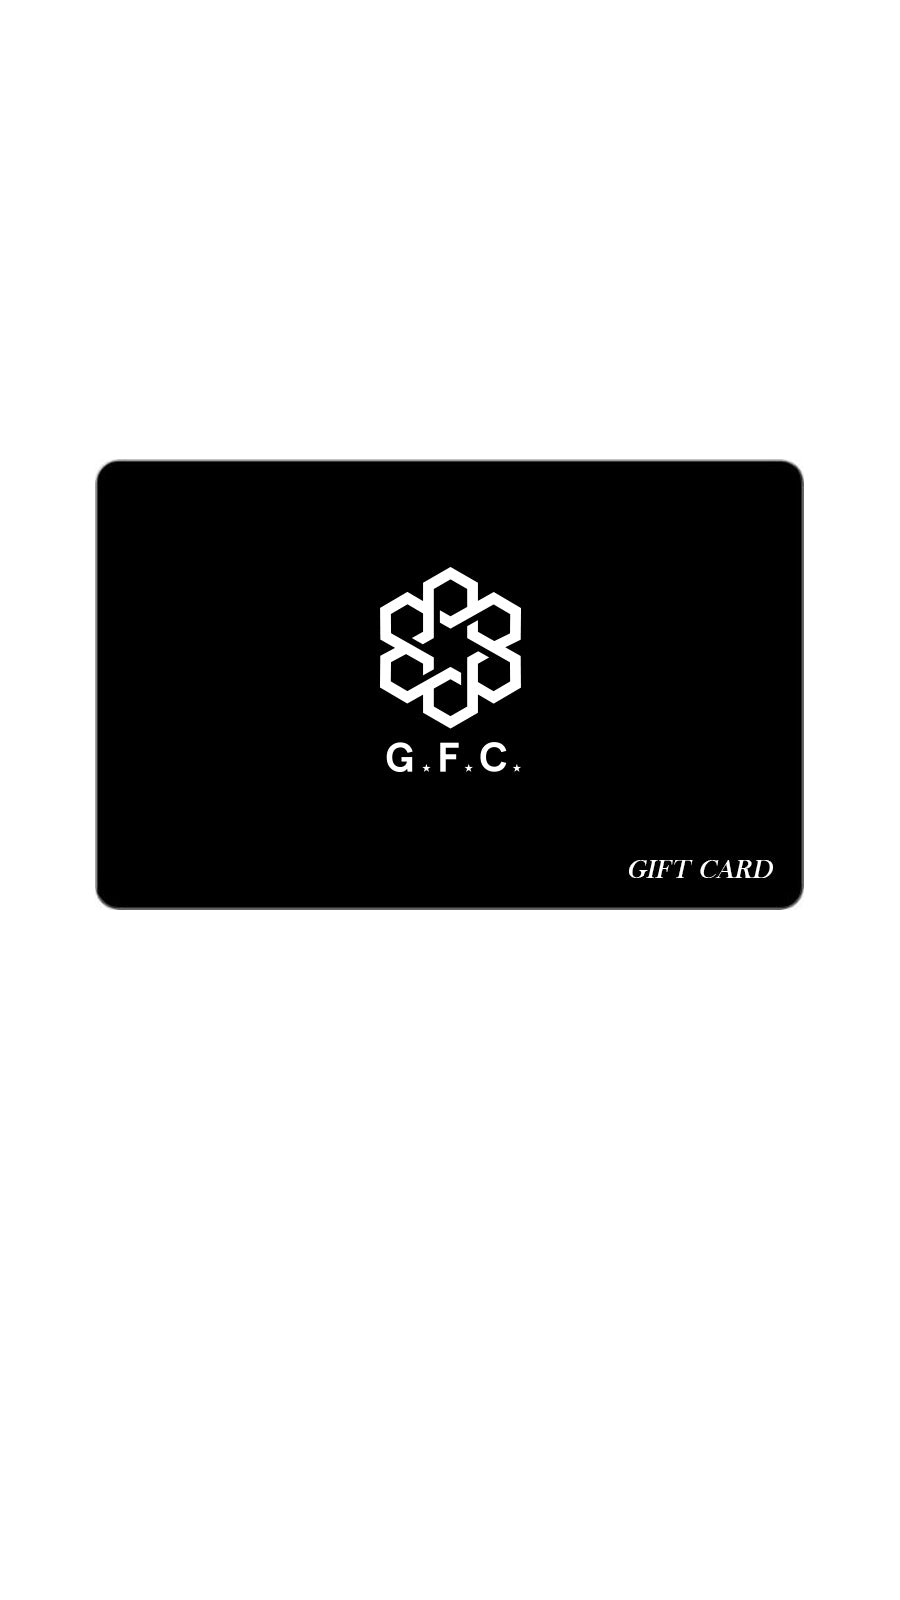 GFC GIFT CARD